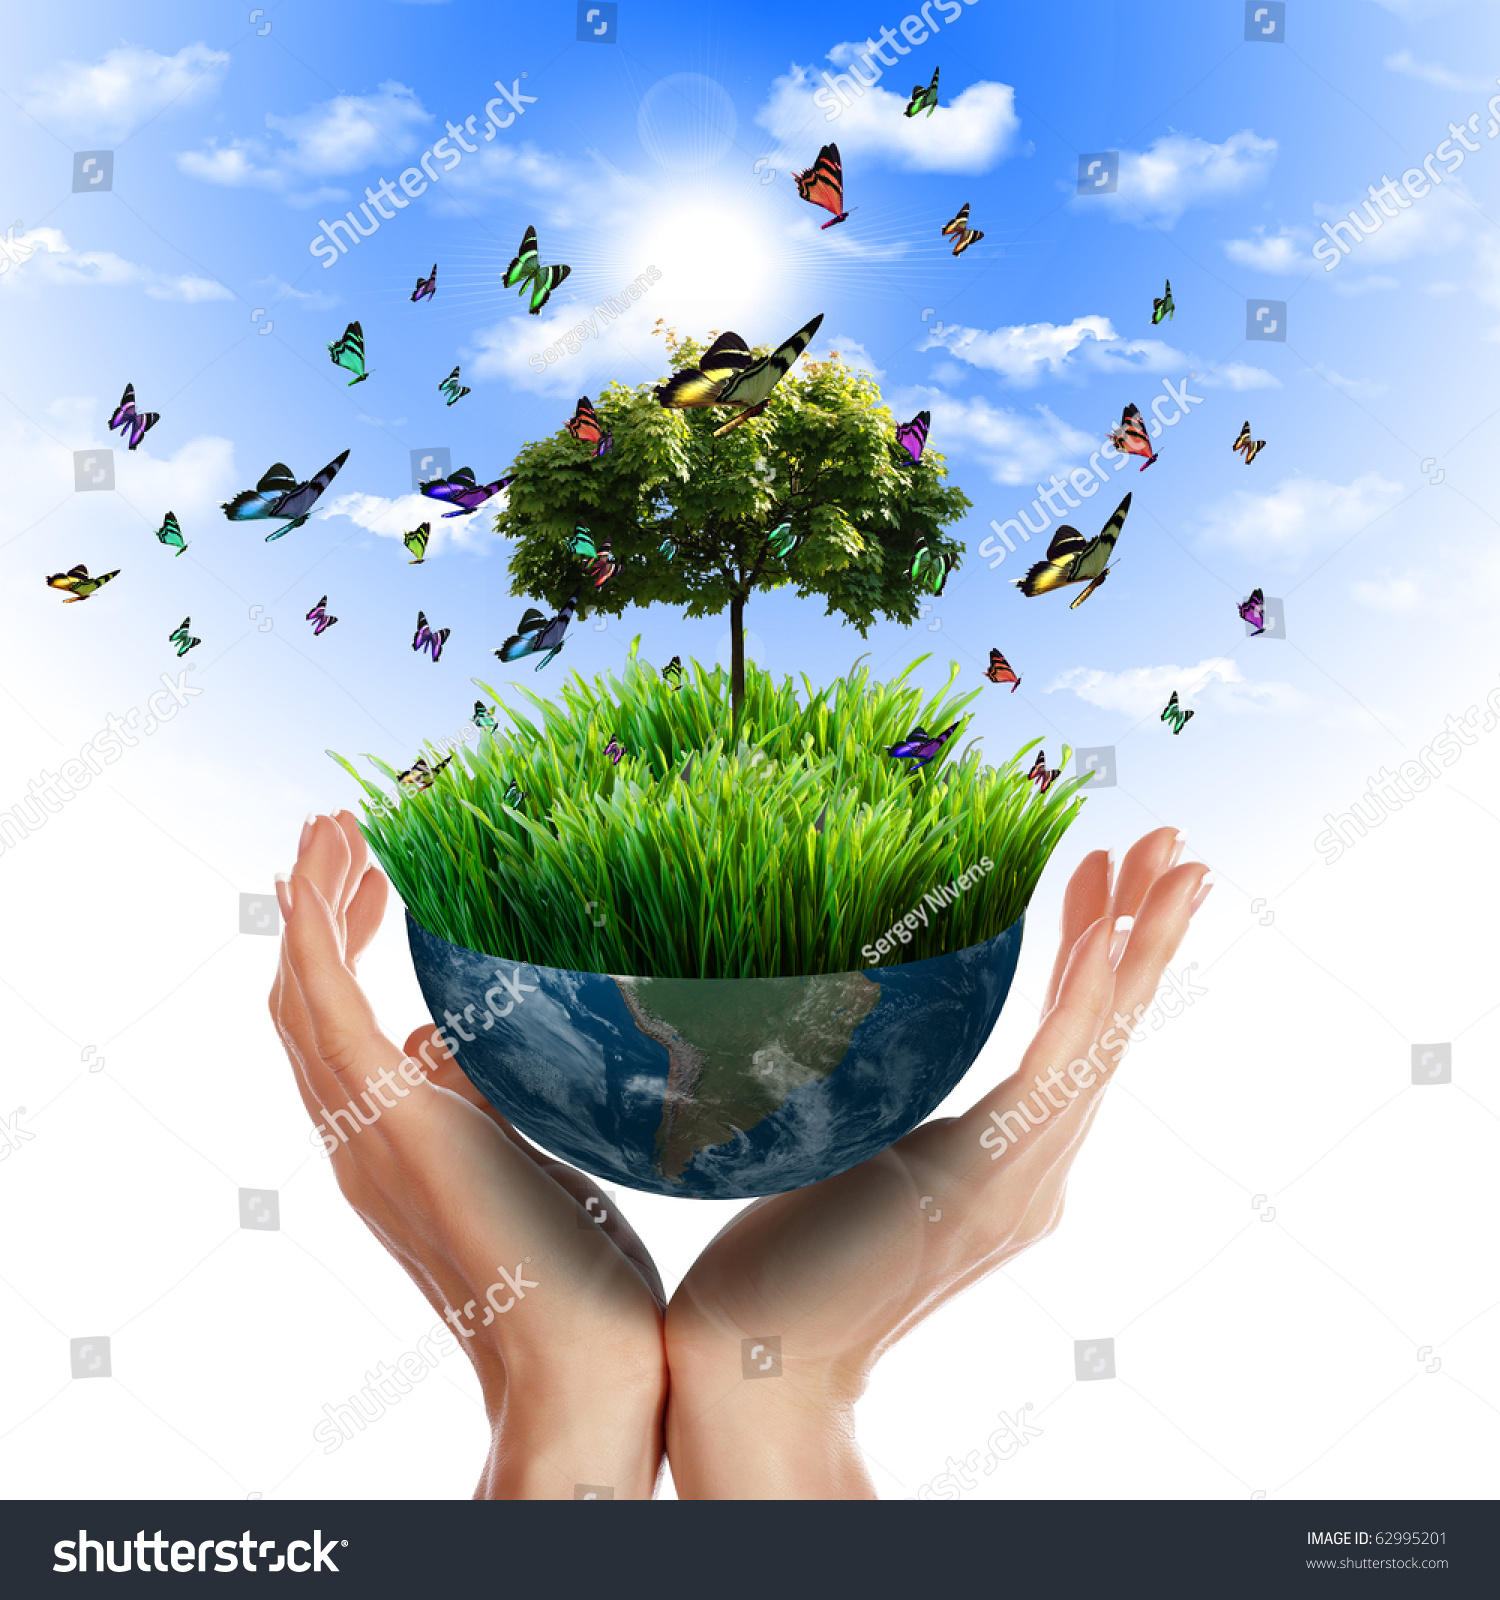 Stock Photo Human Hand And Multicolored Butterflies Grass And A Symbol Of The Environment Collage on Green Environmental Clip Art